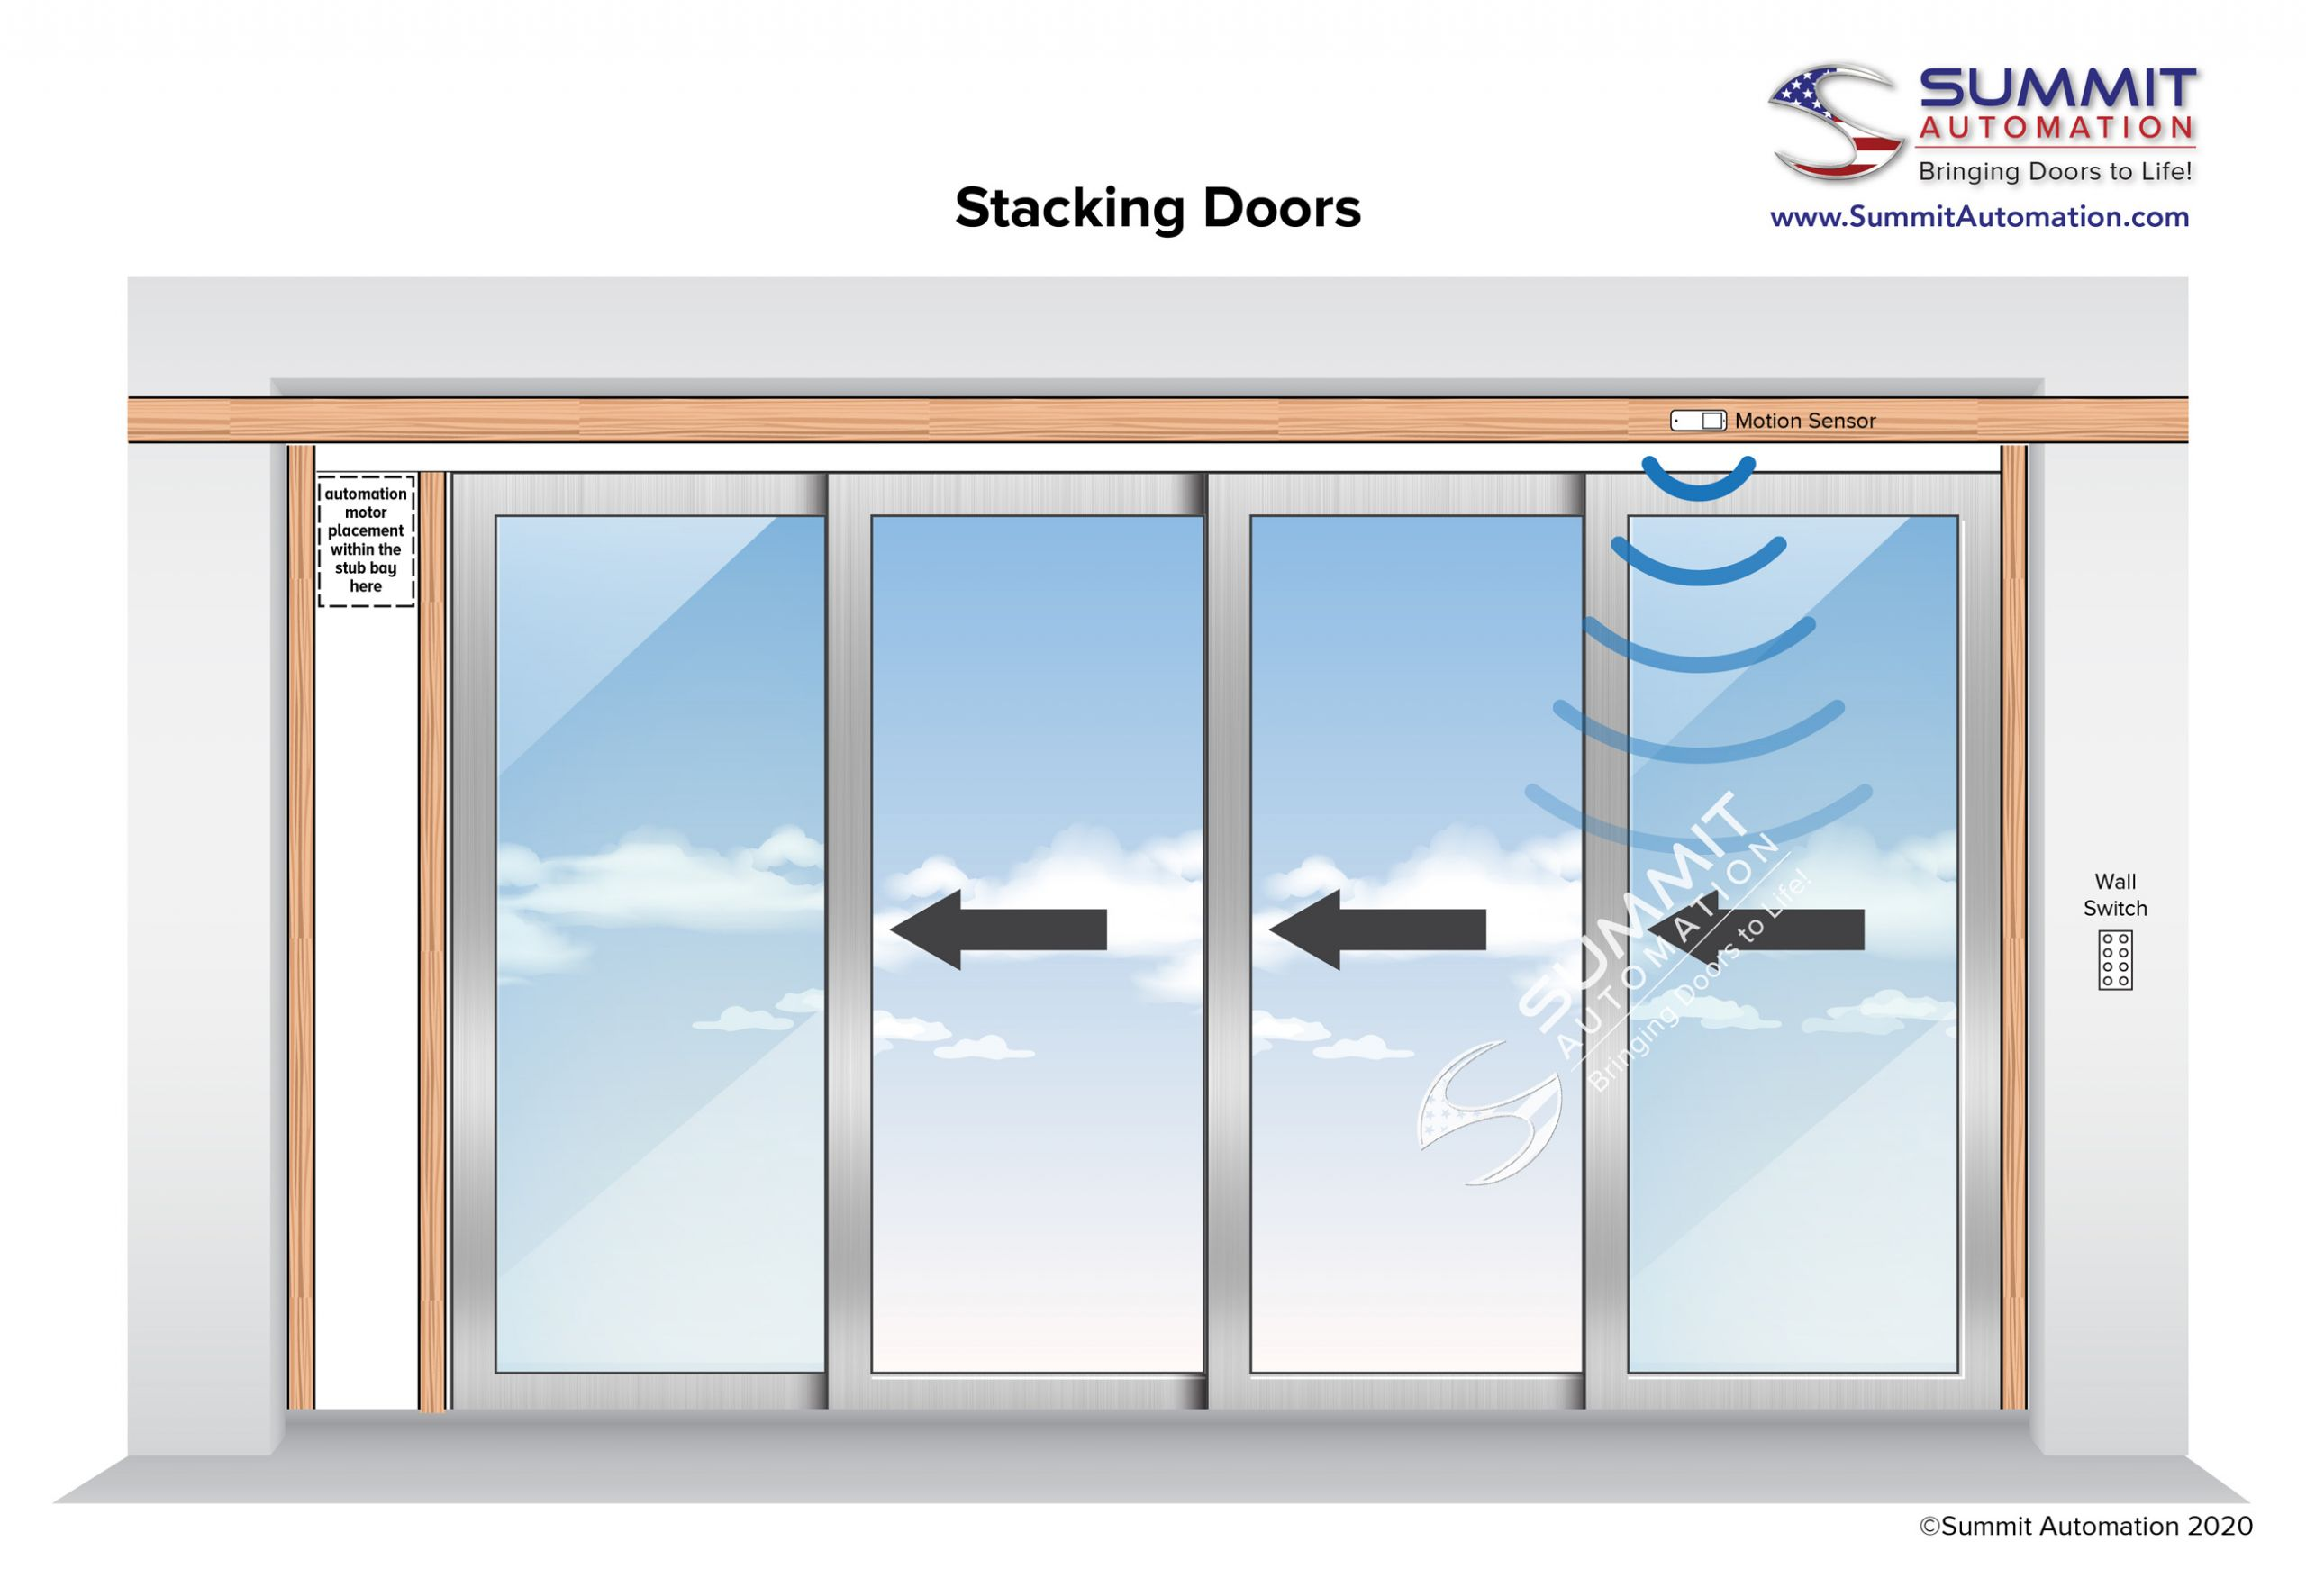 stacking doors diagram